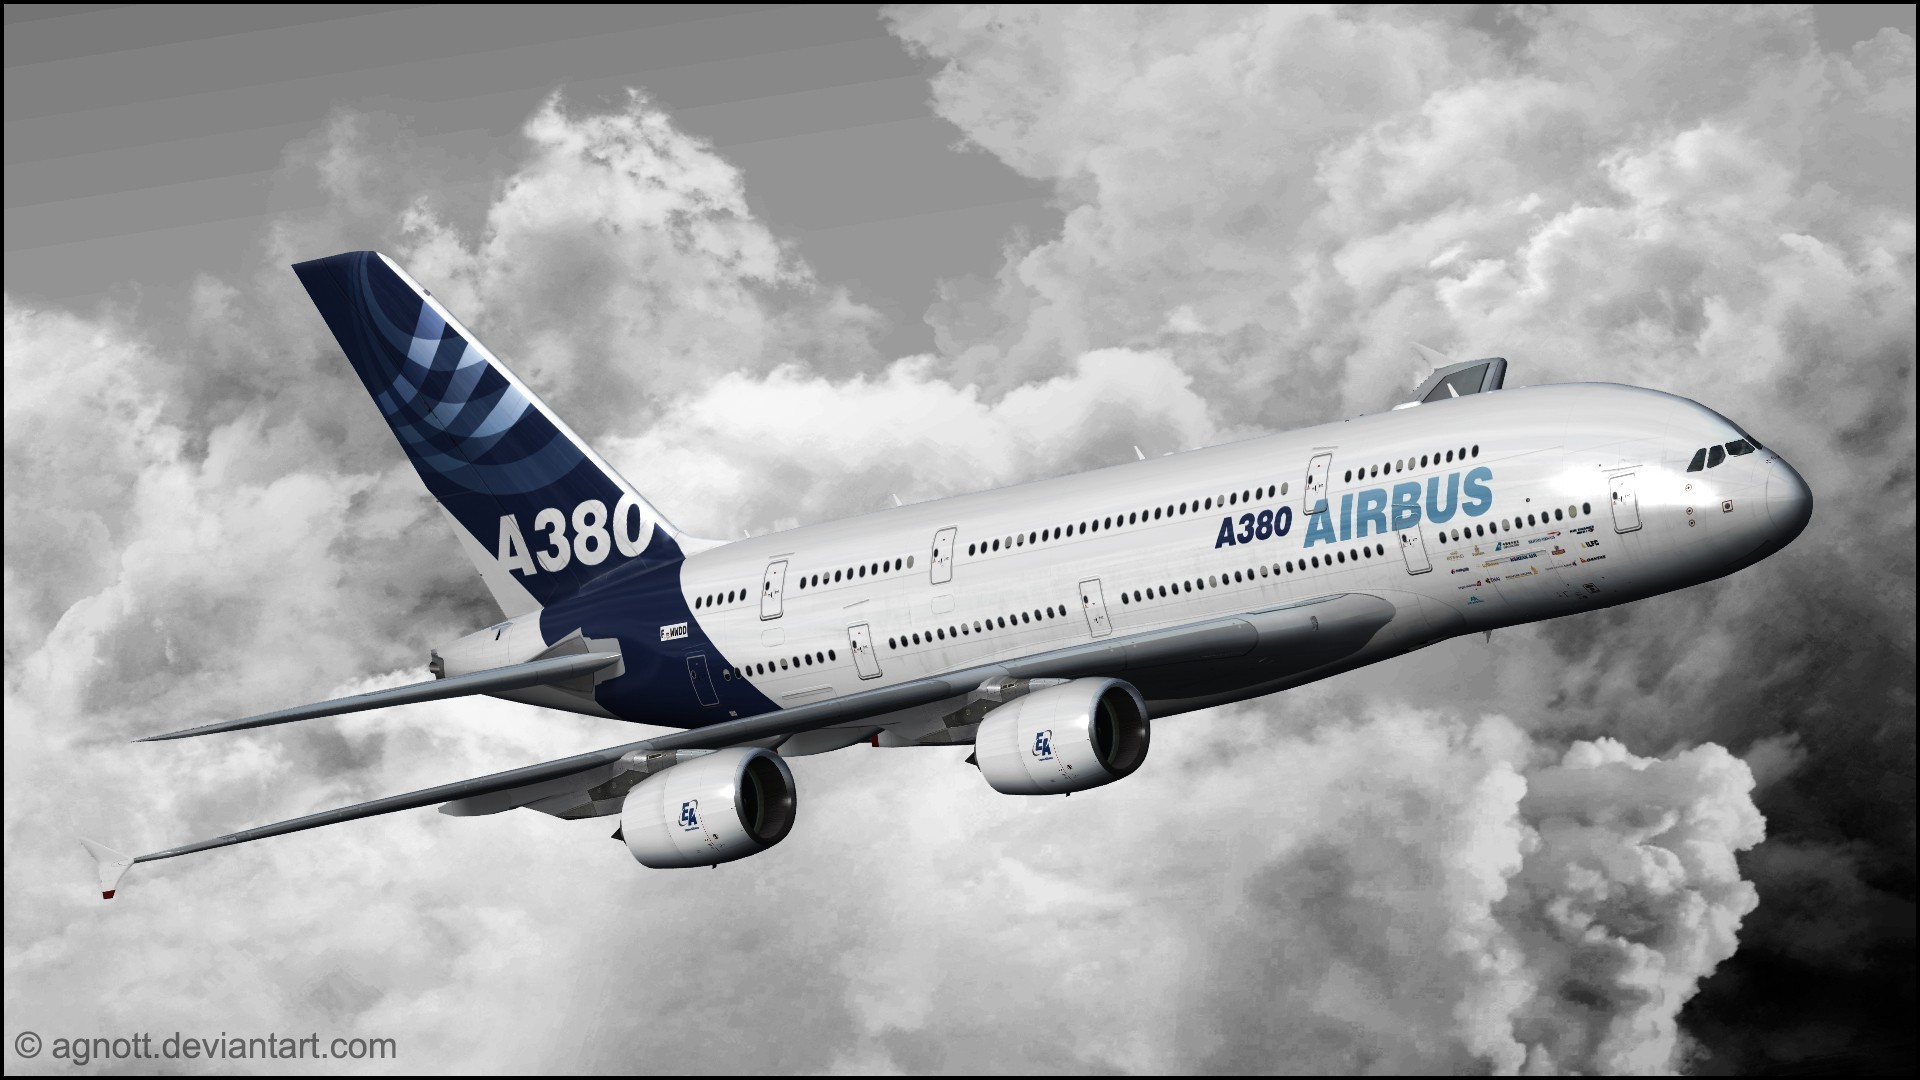 1920x1080 Airbus a380 aircraft aviation clouds wallpaper